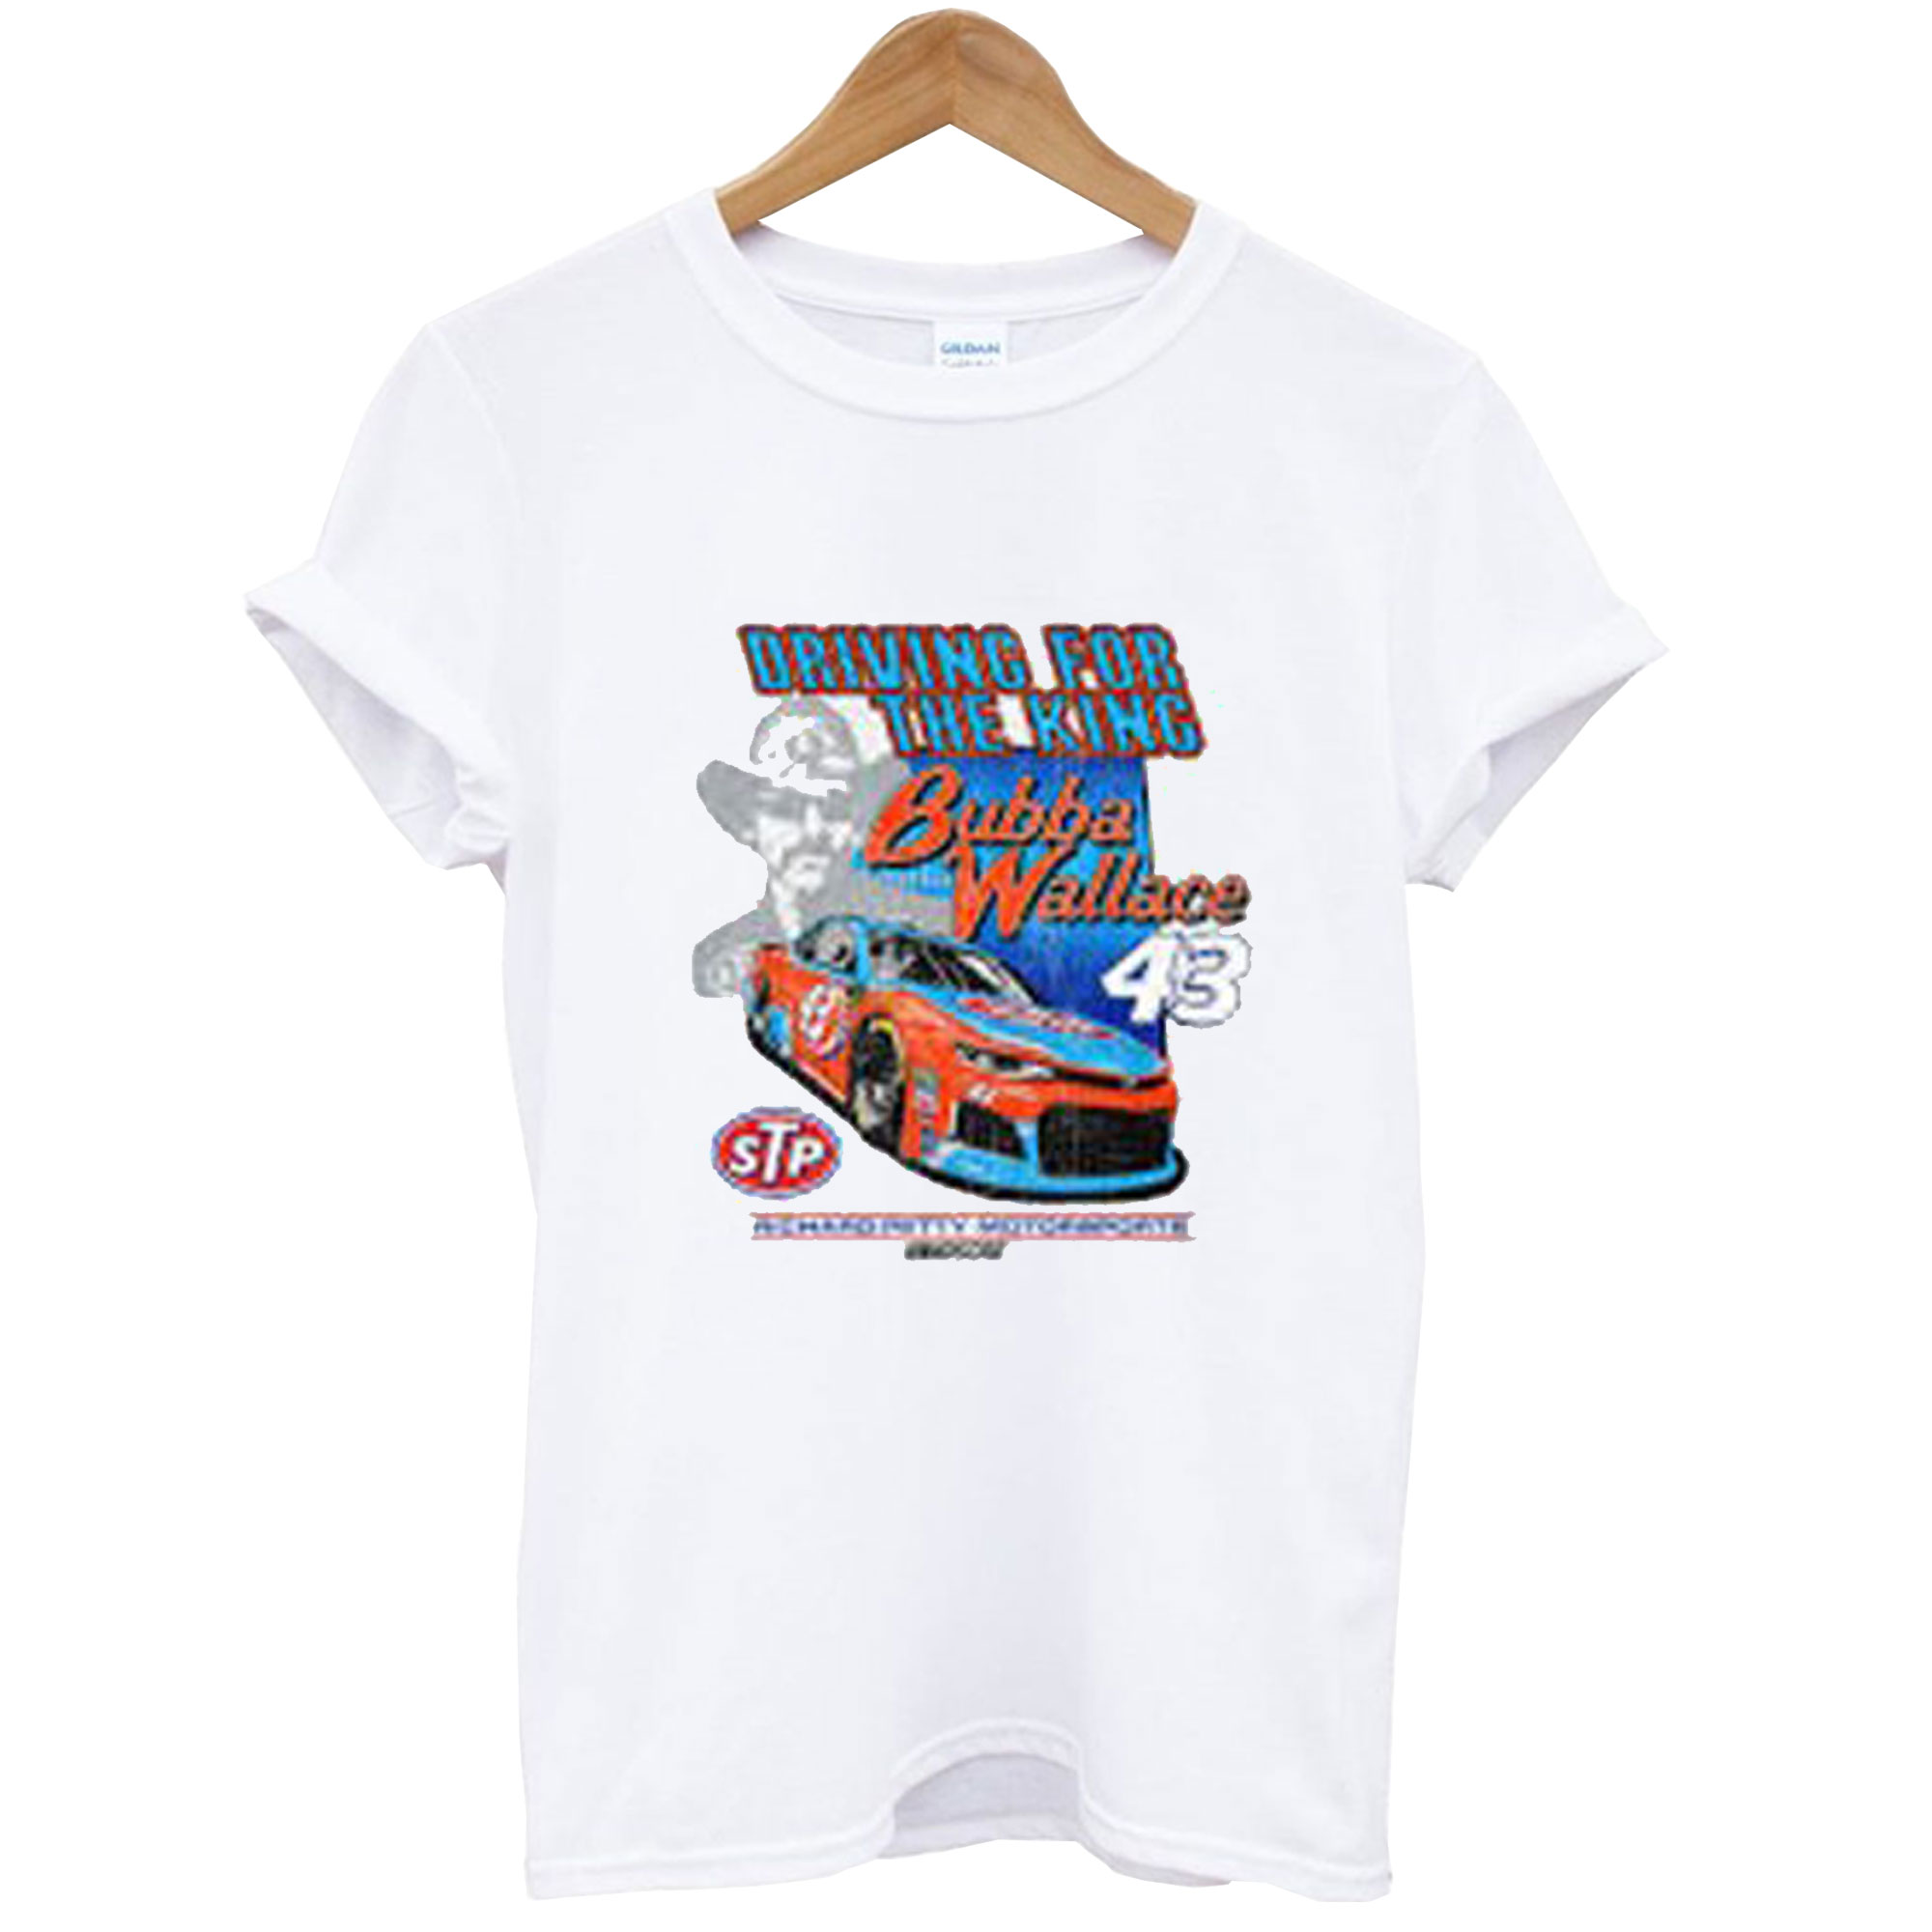 bubba wallace t shirt